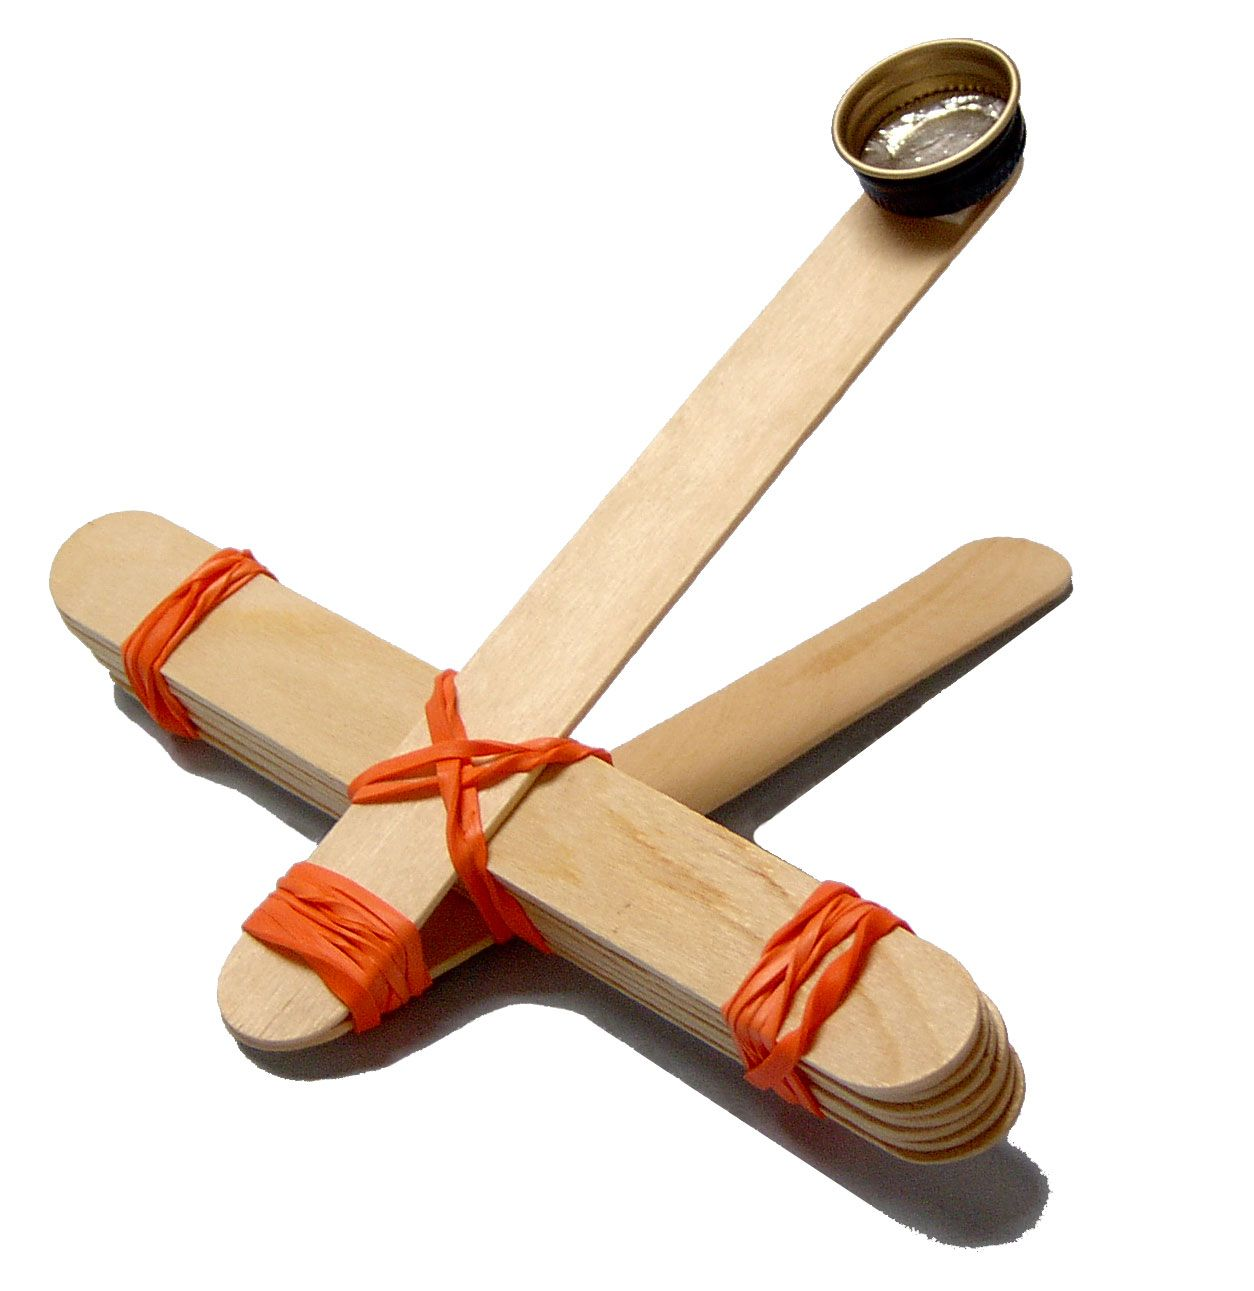 Long wooden craft sticks - Find This Pin And More On Industrial Craft Stick